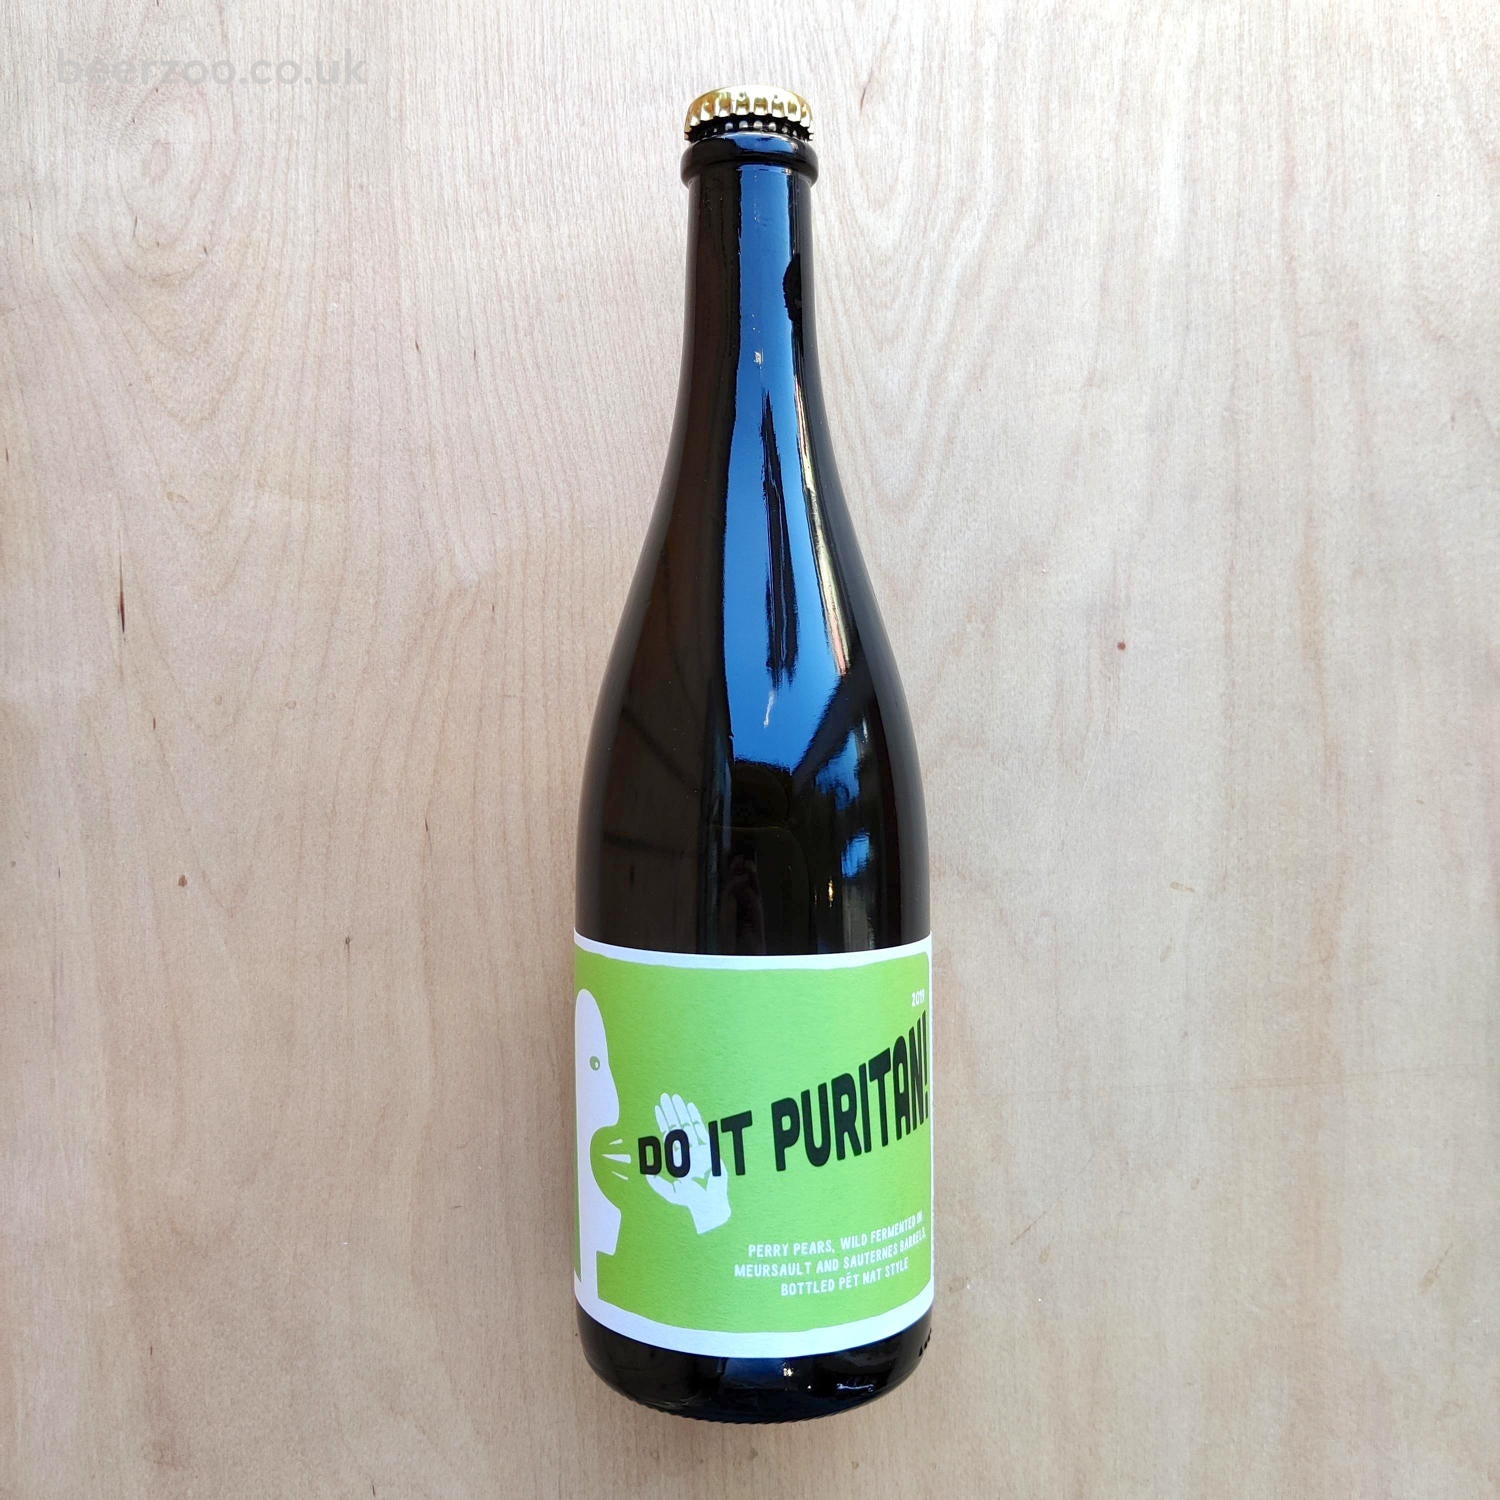 Little Pomona - Do It Puritan! Perry 2019 7.3% (750ml)